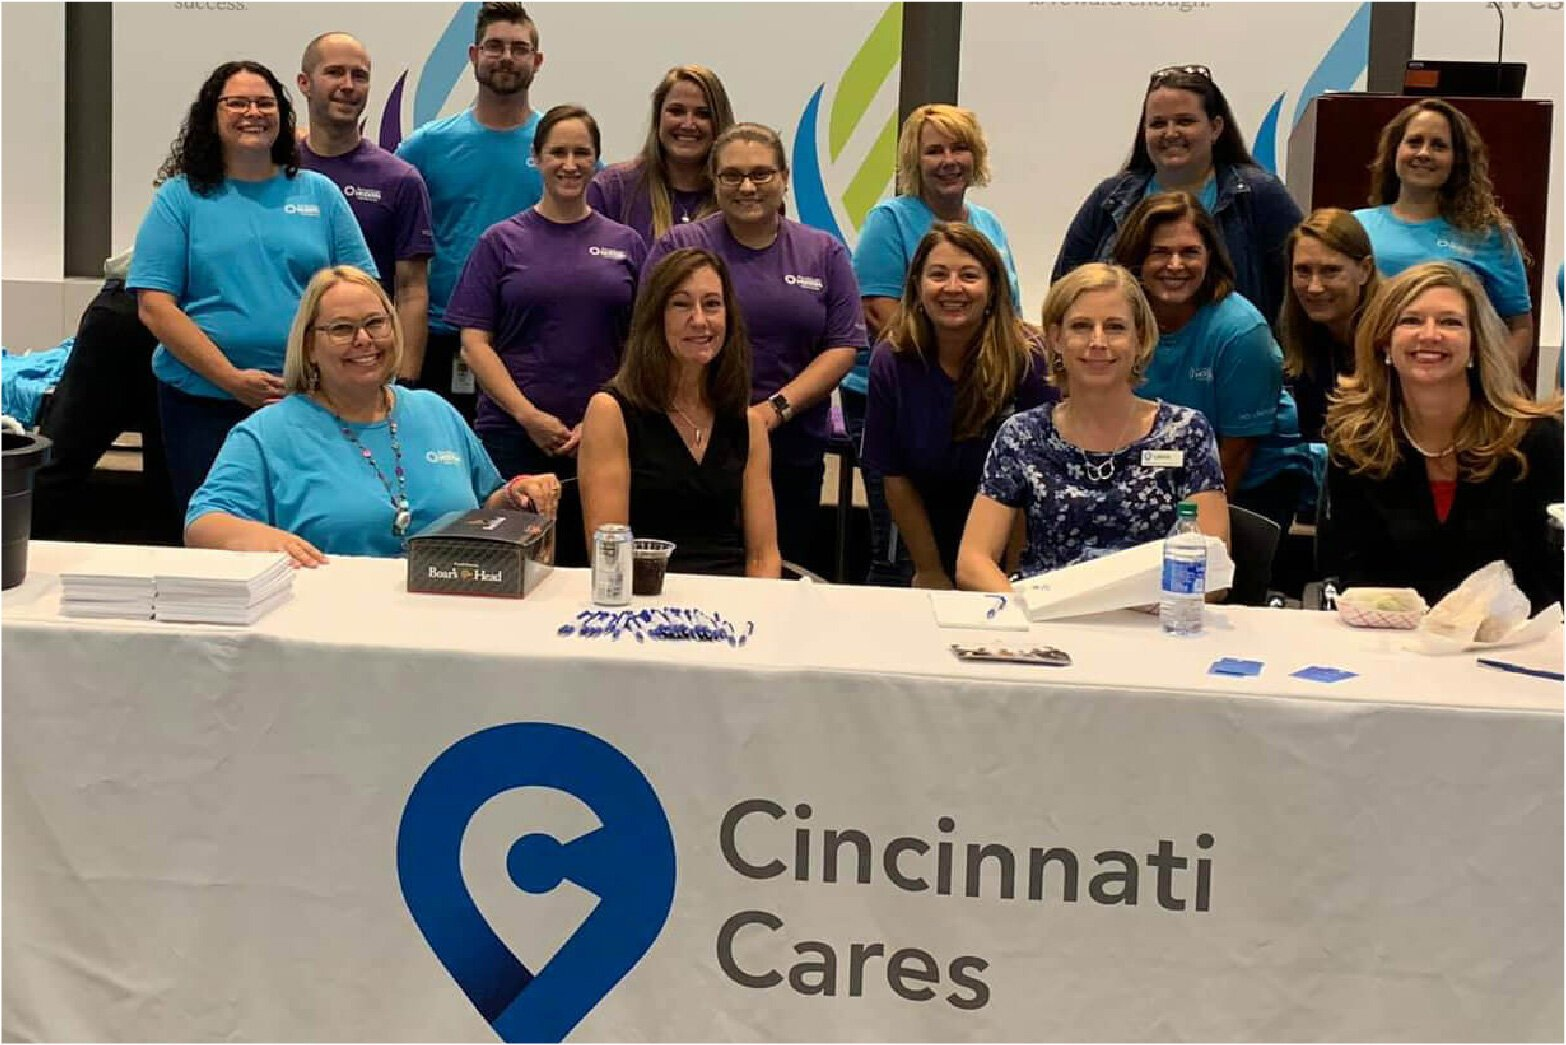 The redesigned site at cincinnaticares.org has gathered data from more than 750 organizations to measure the COVID-19 response's collective impact on community nonprofits.